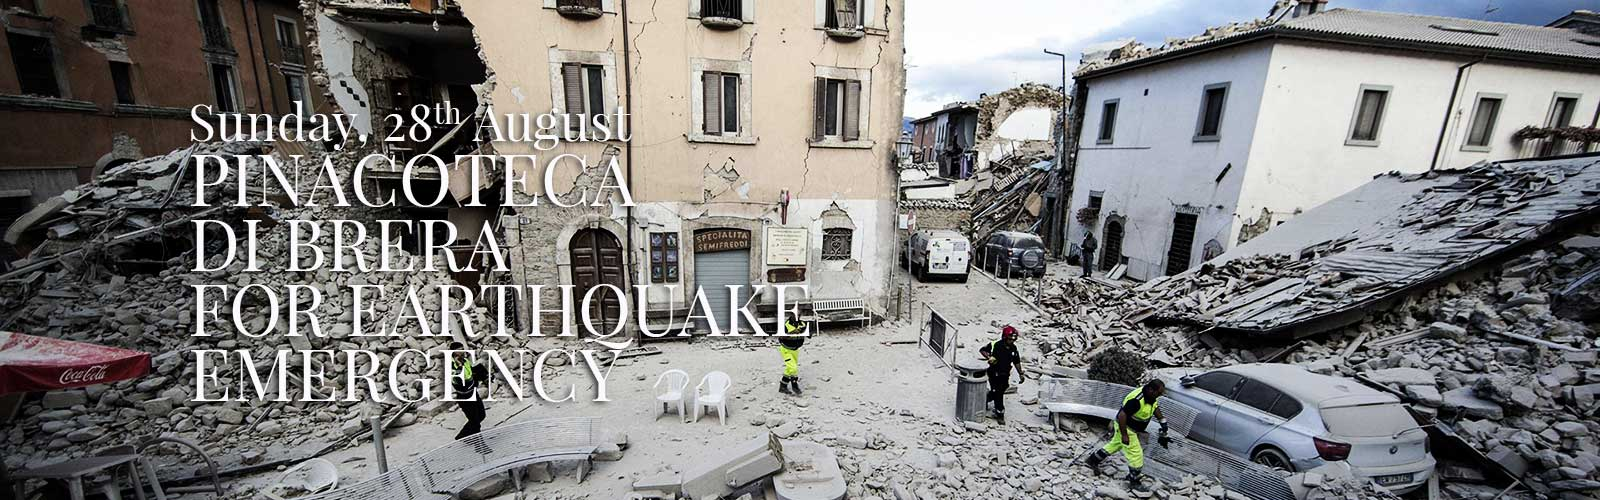 Pinacoteca di Brera to donate ticket sales on Sunday, August 28th to earthquake rescue efforts